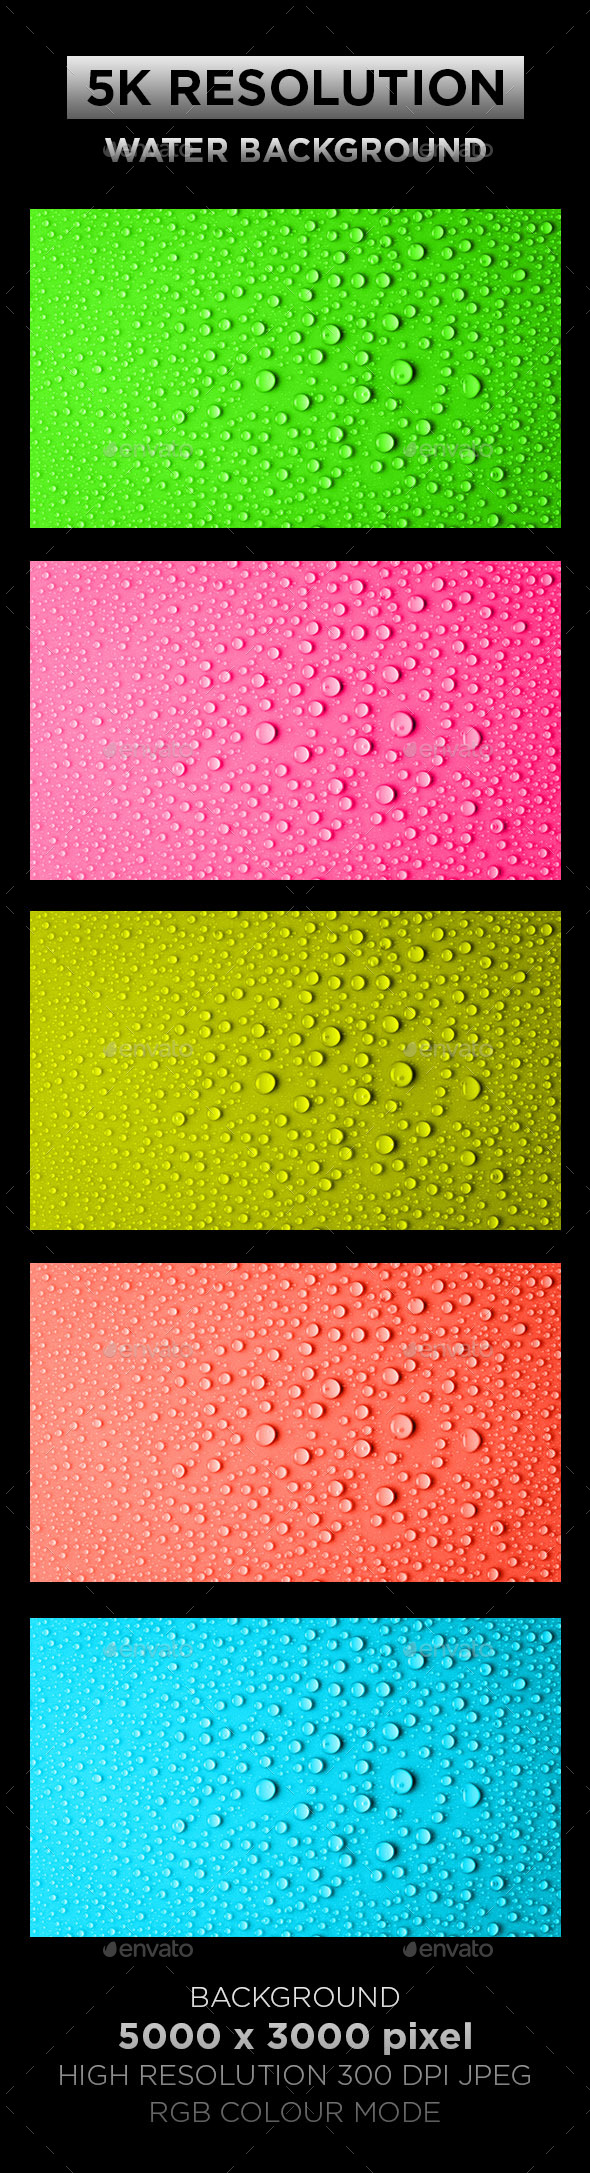 Water Texture Background 001 - Backgrounds Graphics